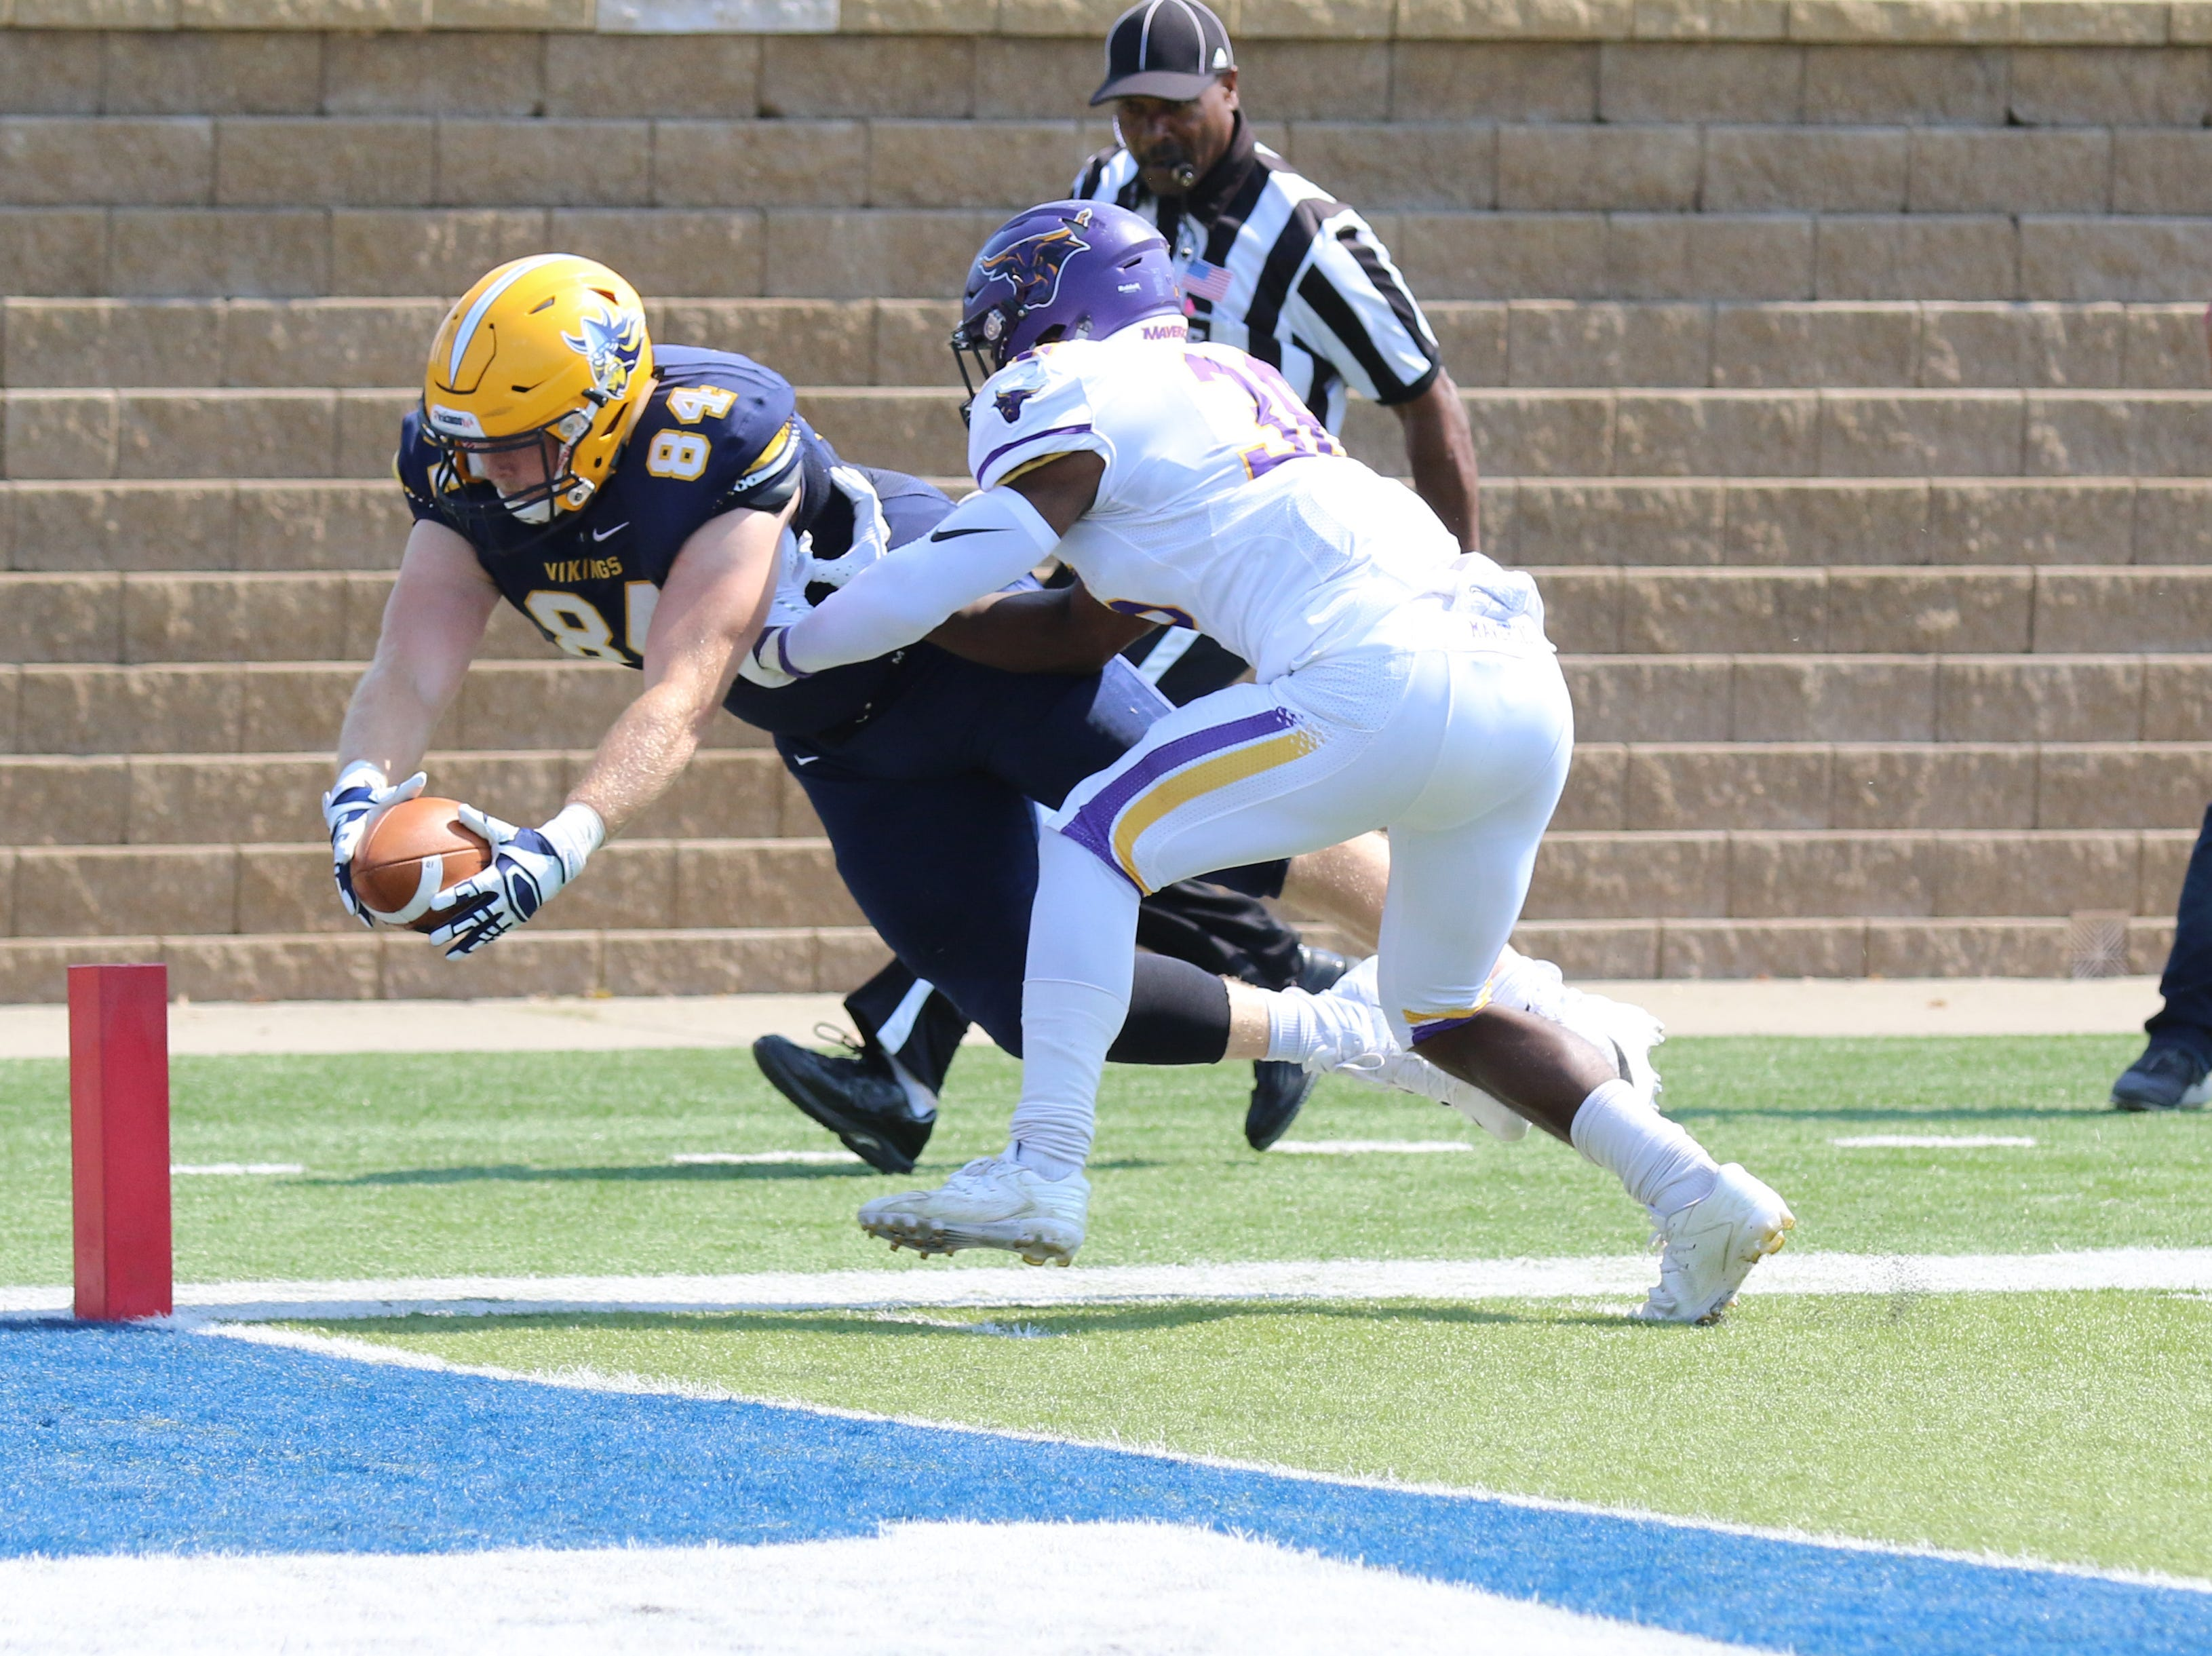 Augustana's Sr tight end #84 Chet Peerenboom dives to the endzone for the score in their game against Minnesota State-Mankato. Minnesota State won 38-36.